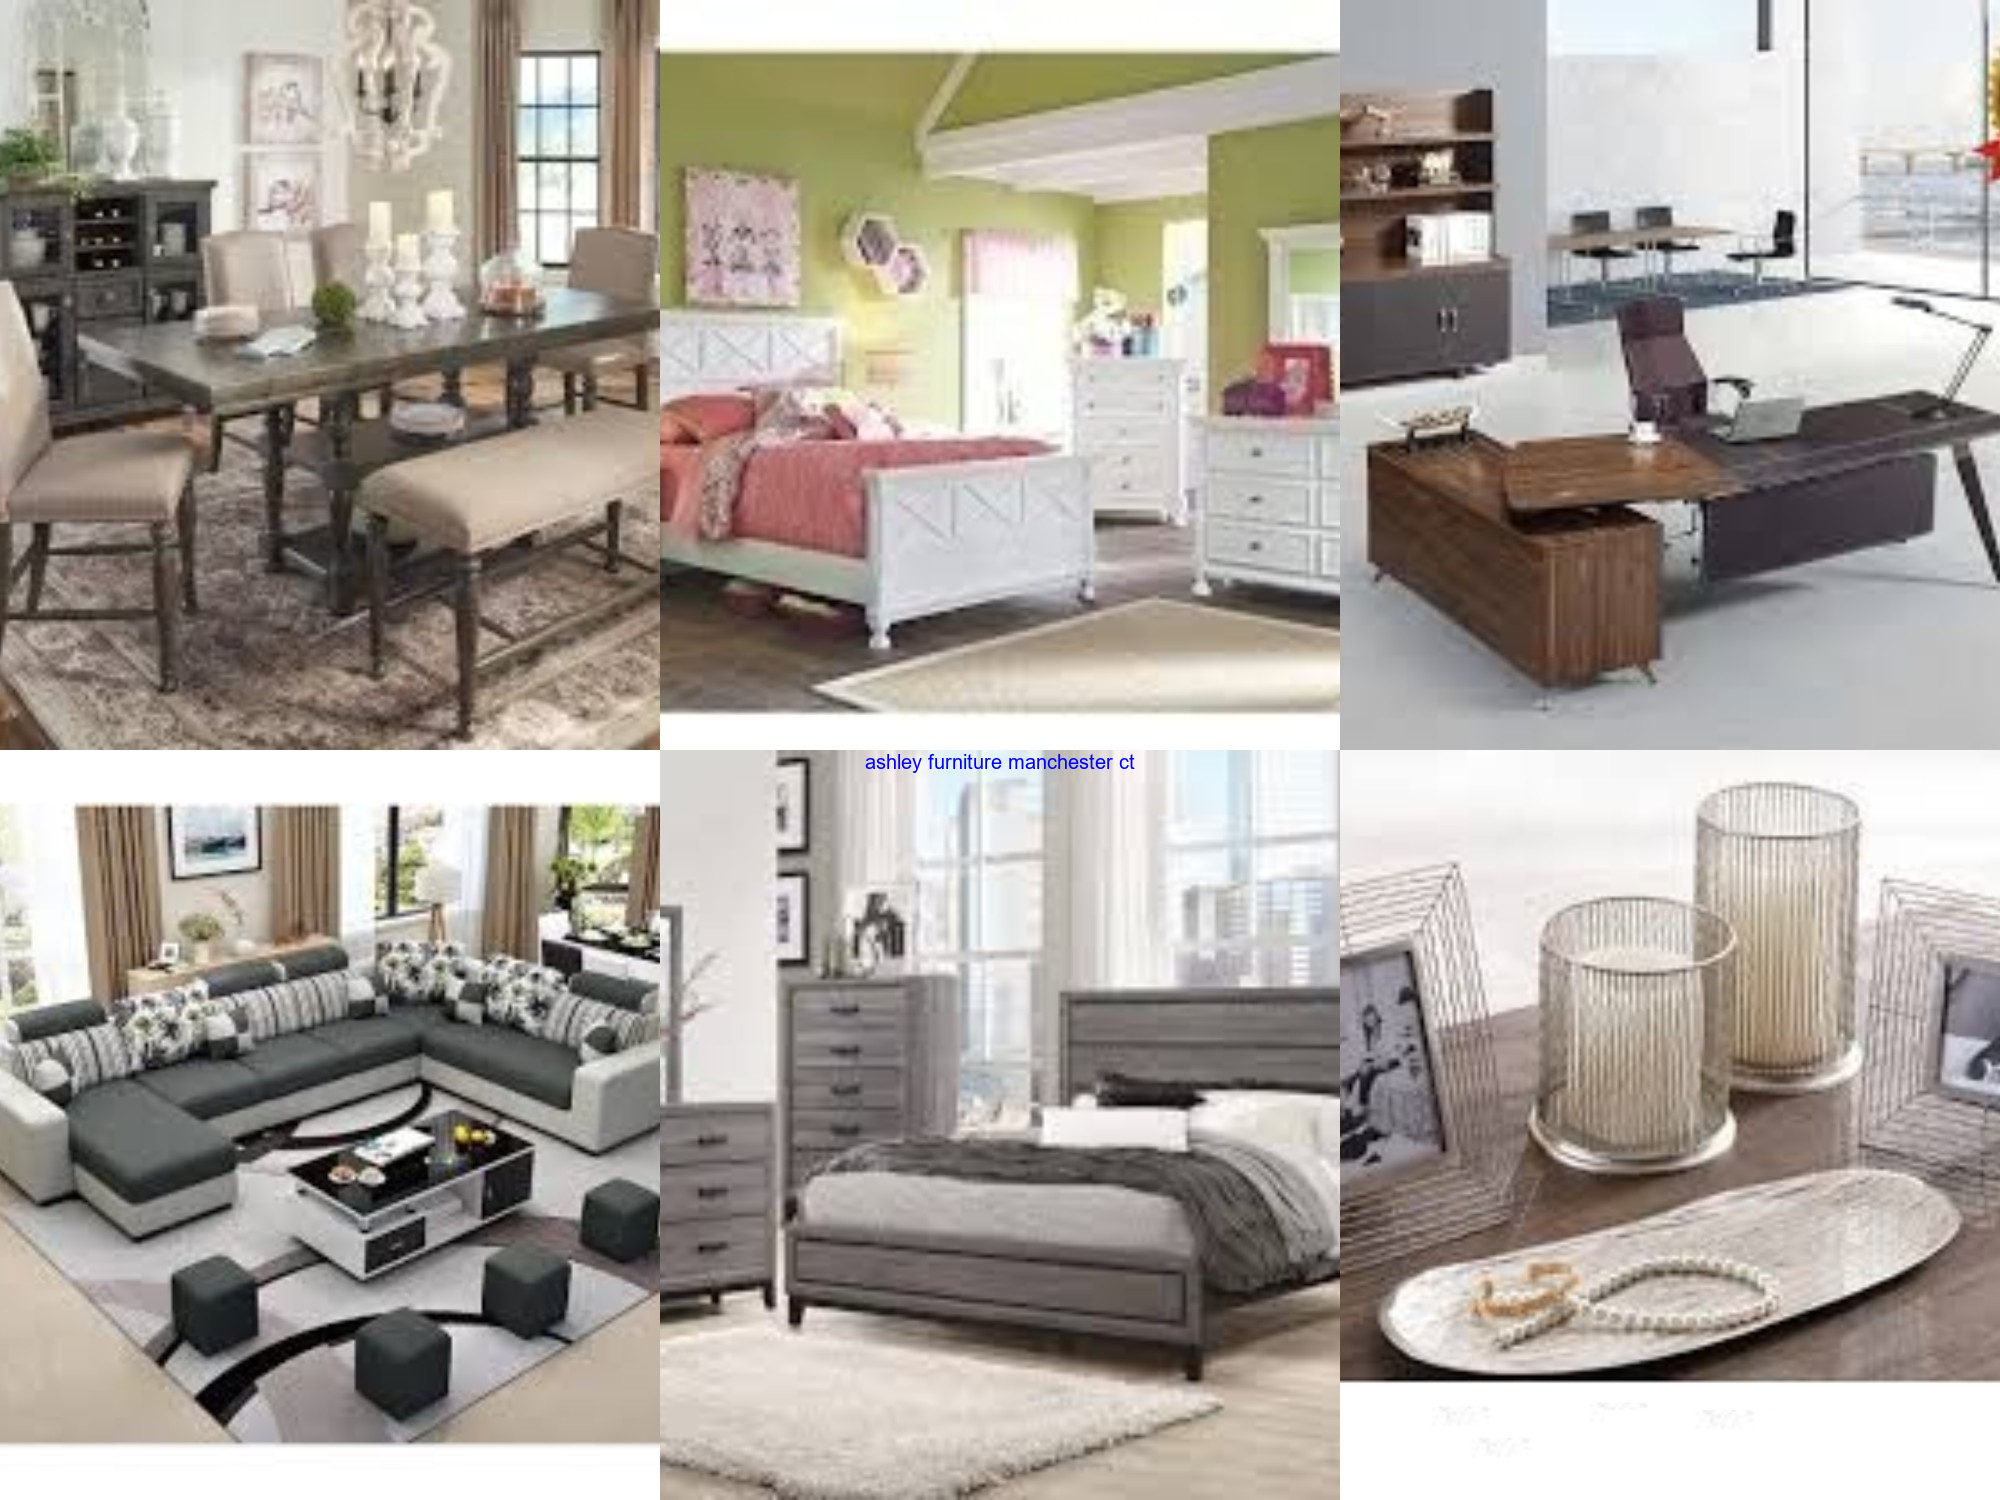 Ashley Furniture Manchester Ct In 2020 Value City Furniture Furniture Wholesale Furniture